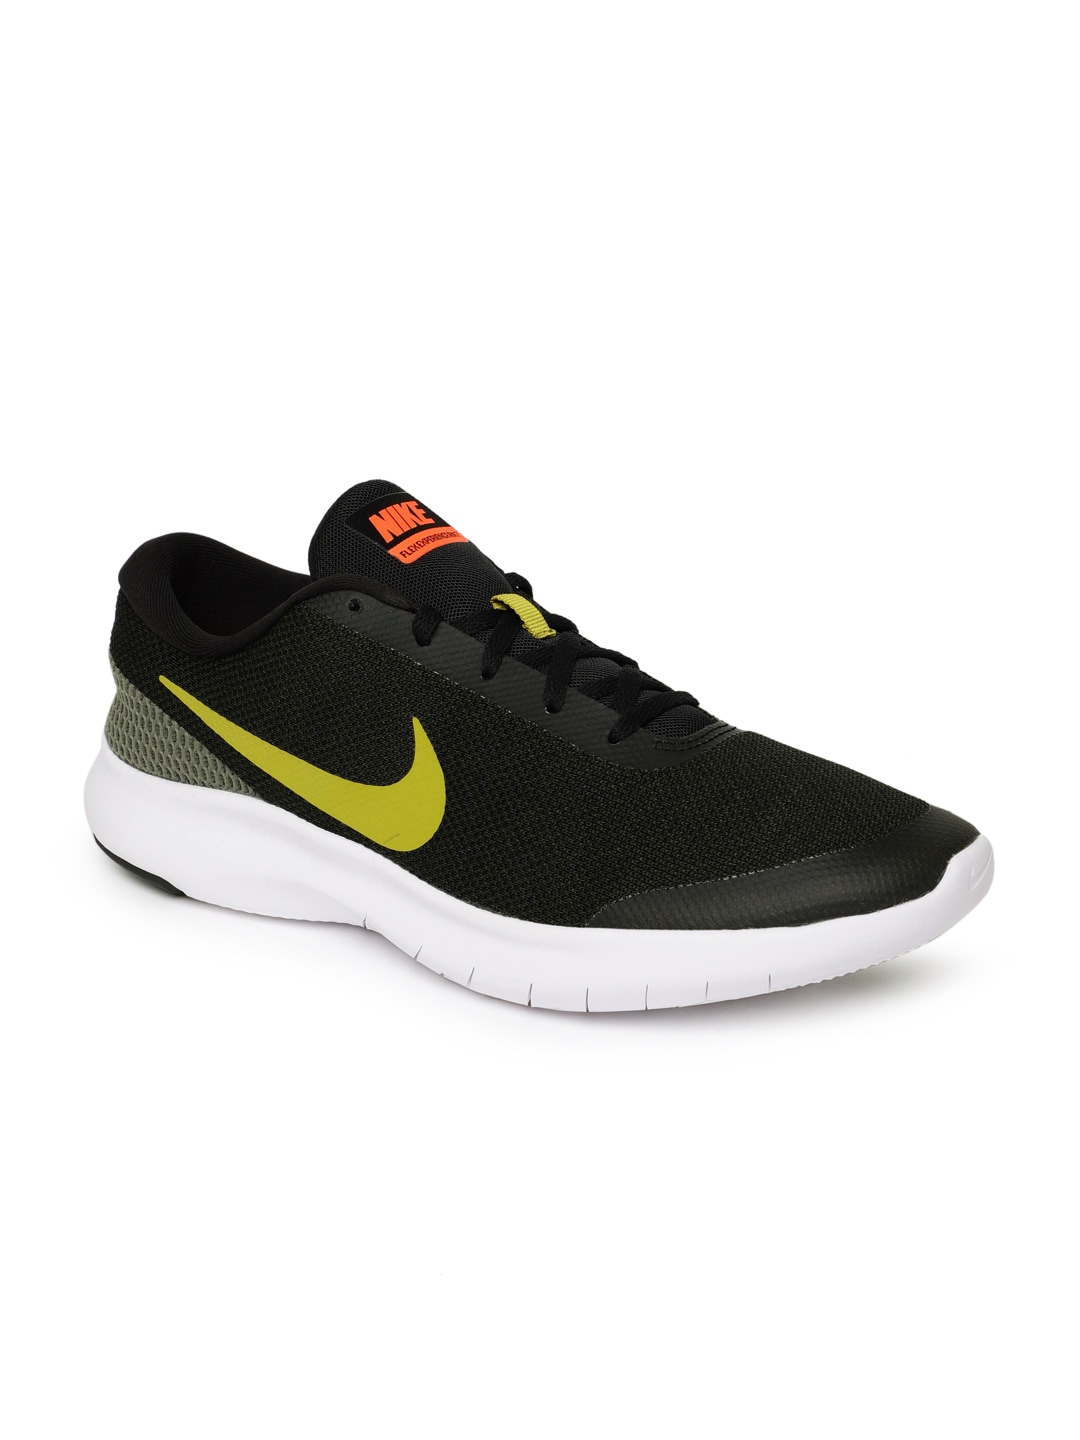 e7e6fc61c7a3 Nike Shoes - Buy Nike Shoes for Men